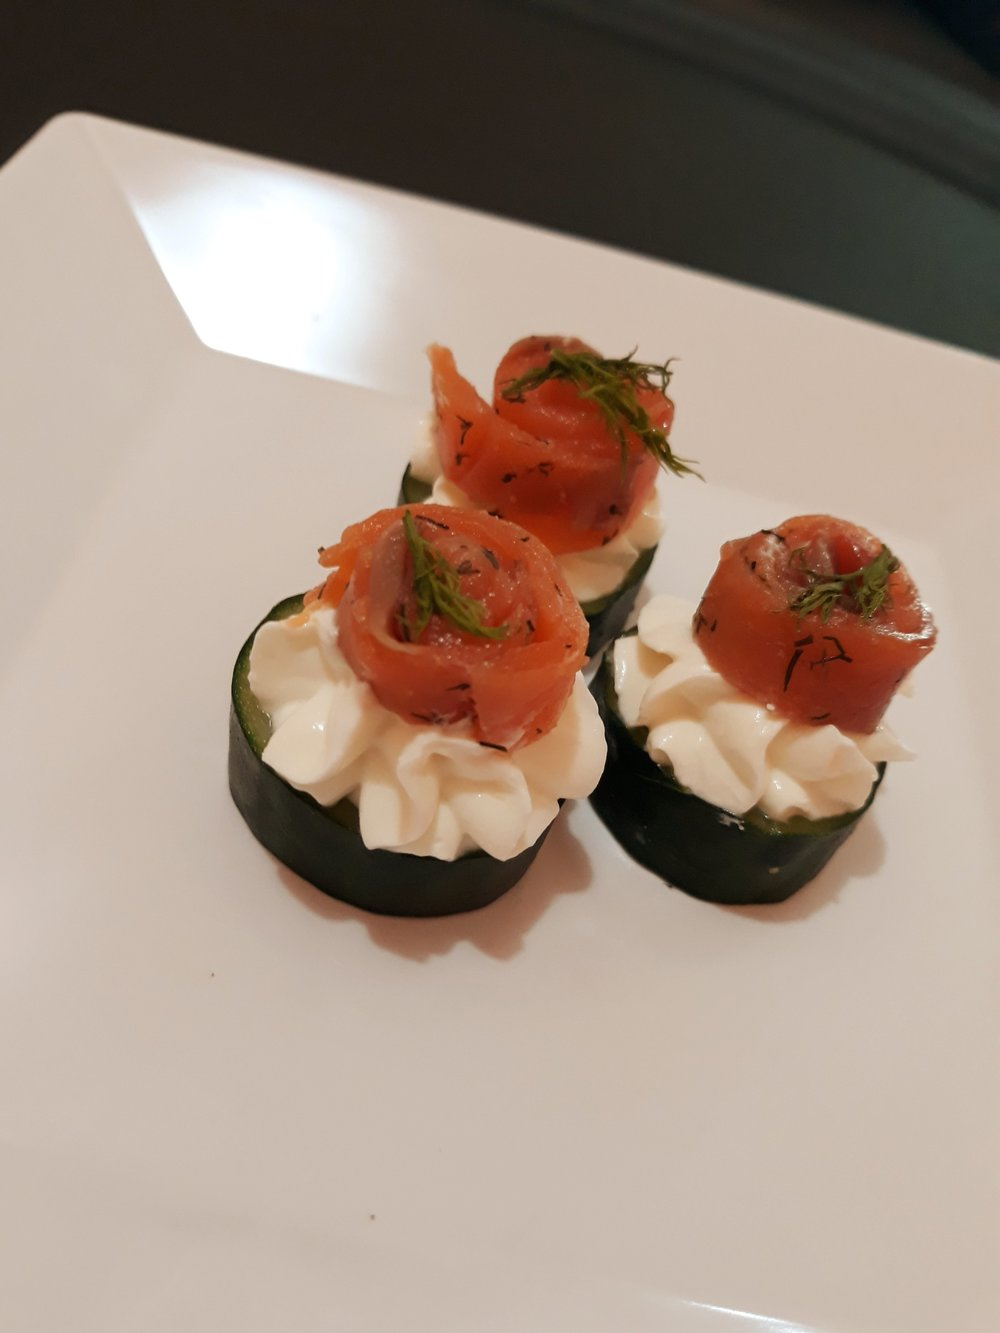 Cucumber canapes with whipped dill cream cheese & smoked salmon